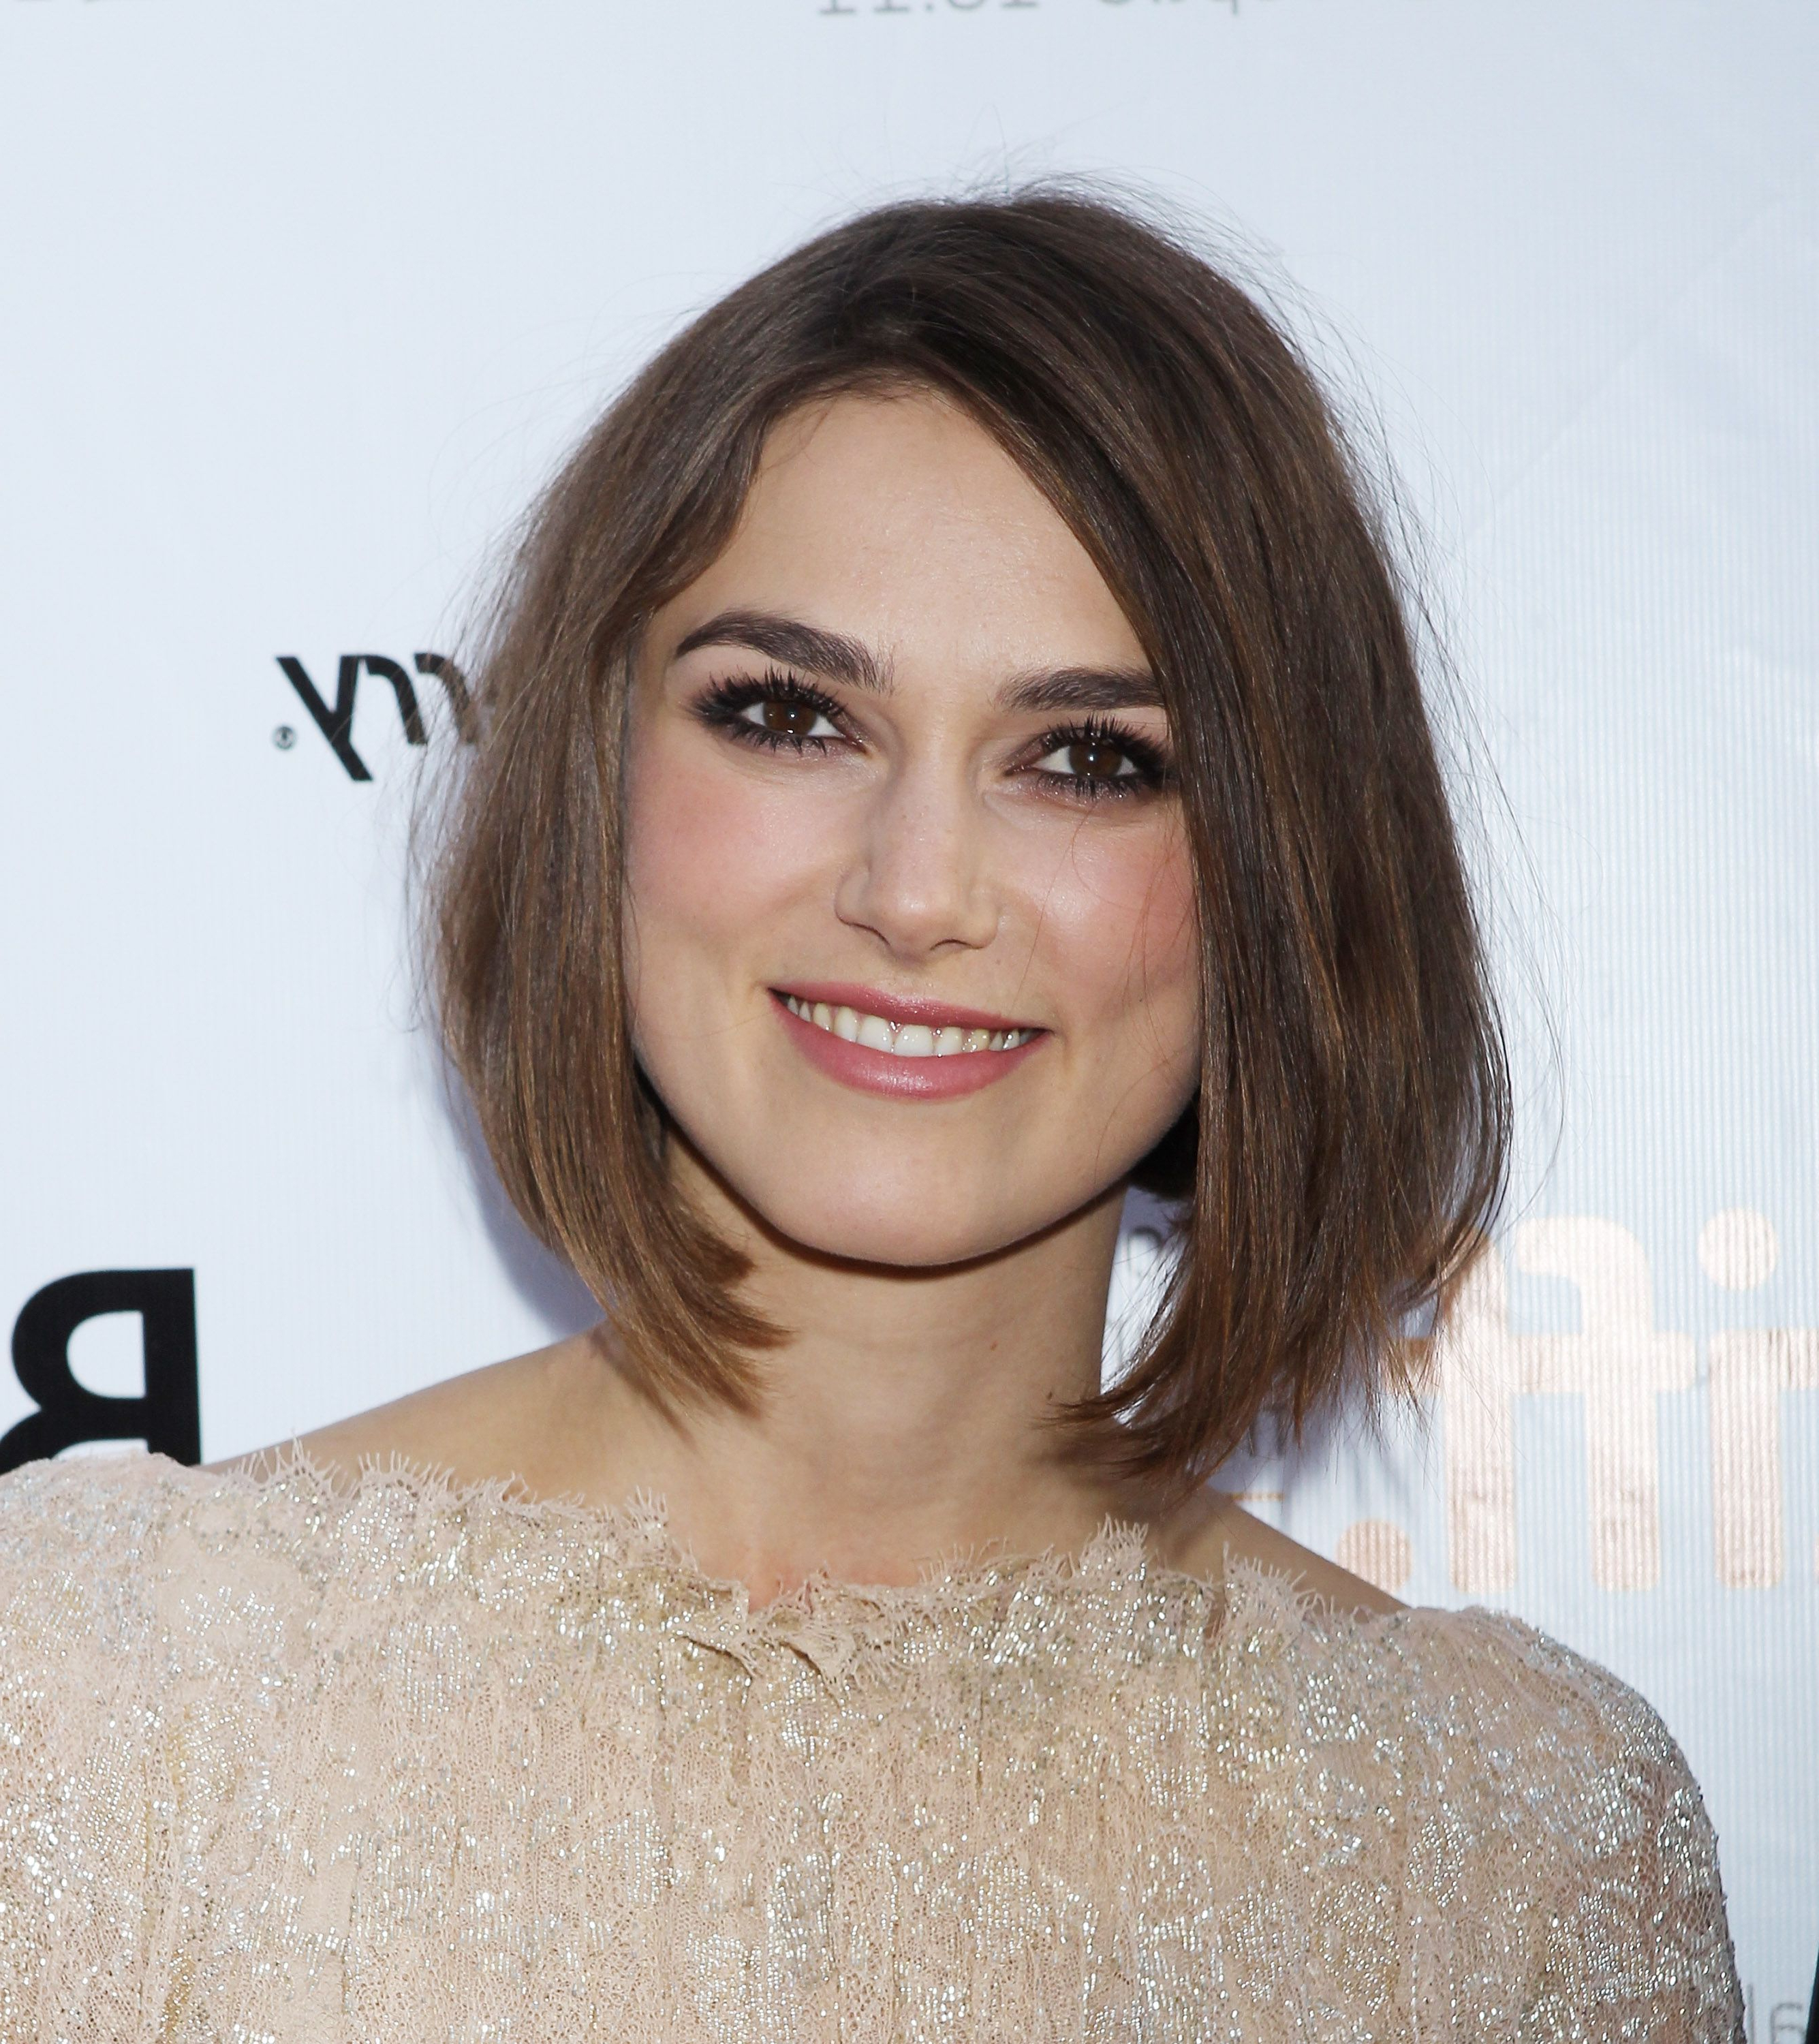 The 13 Best Hairstyles For Square Faces In Short Haircuts For Square Face Shape (View 19 of 25)